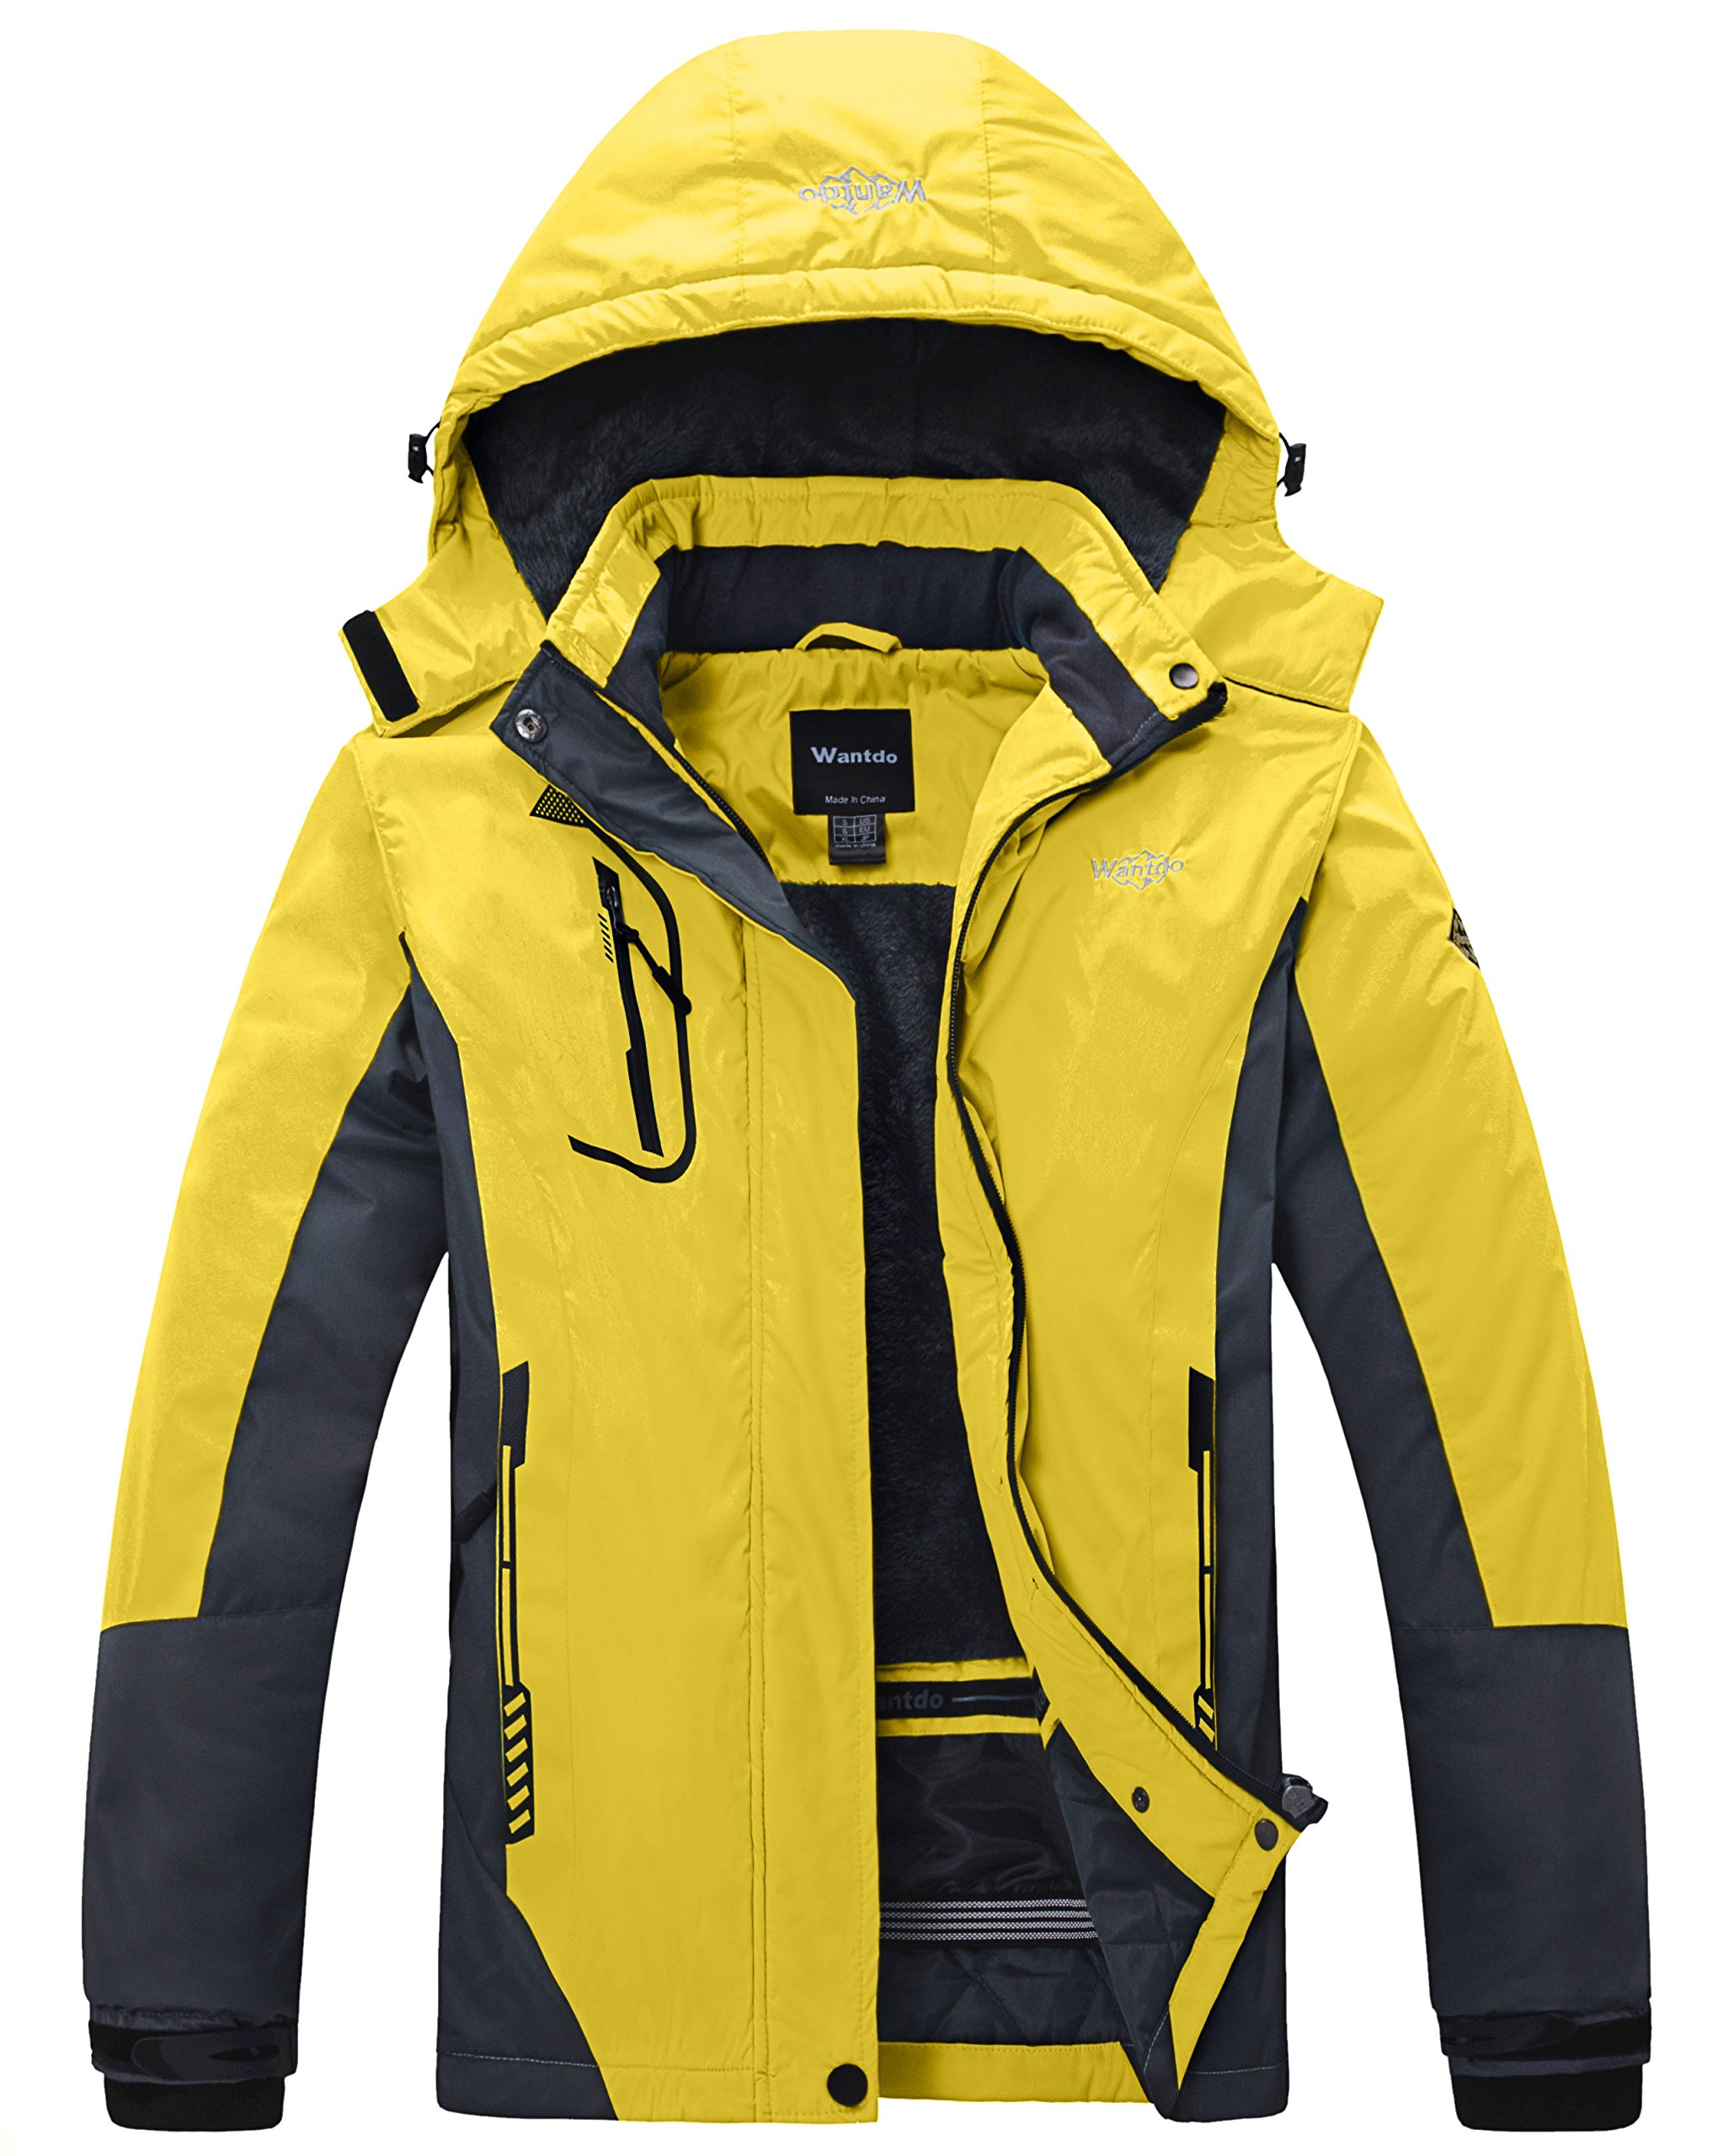 Wantdo Women's Mountain Waterproof Fleece Ski Jacket Windproof Rain Jacket US M Yellow